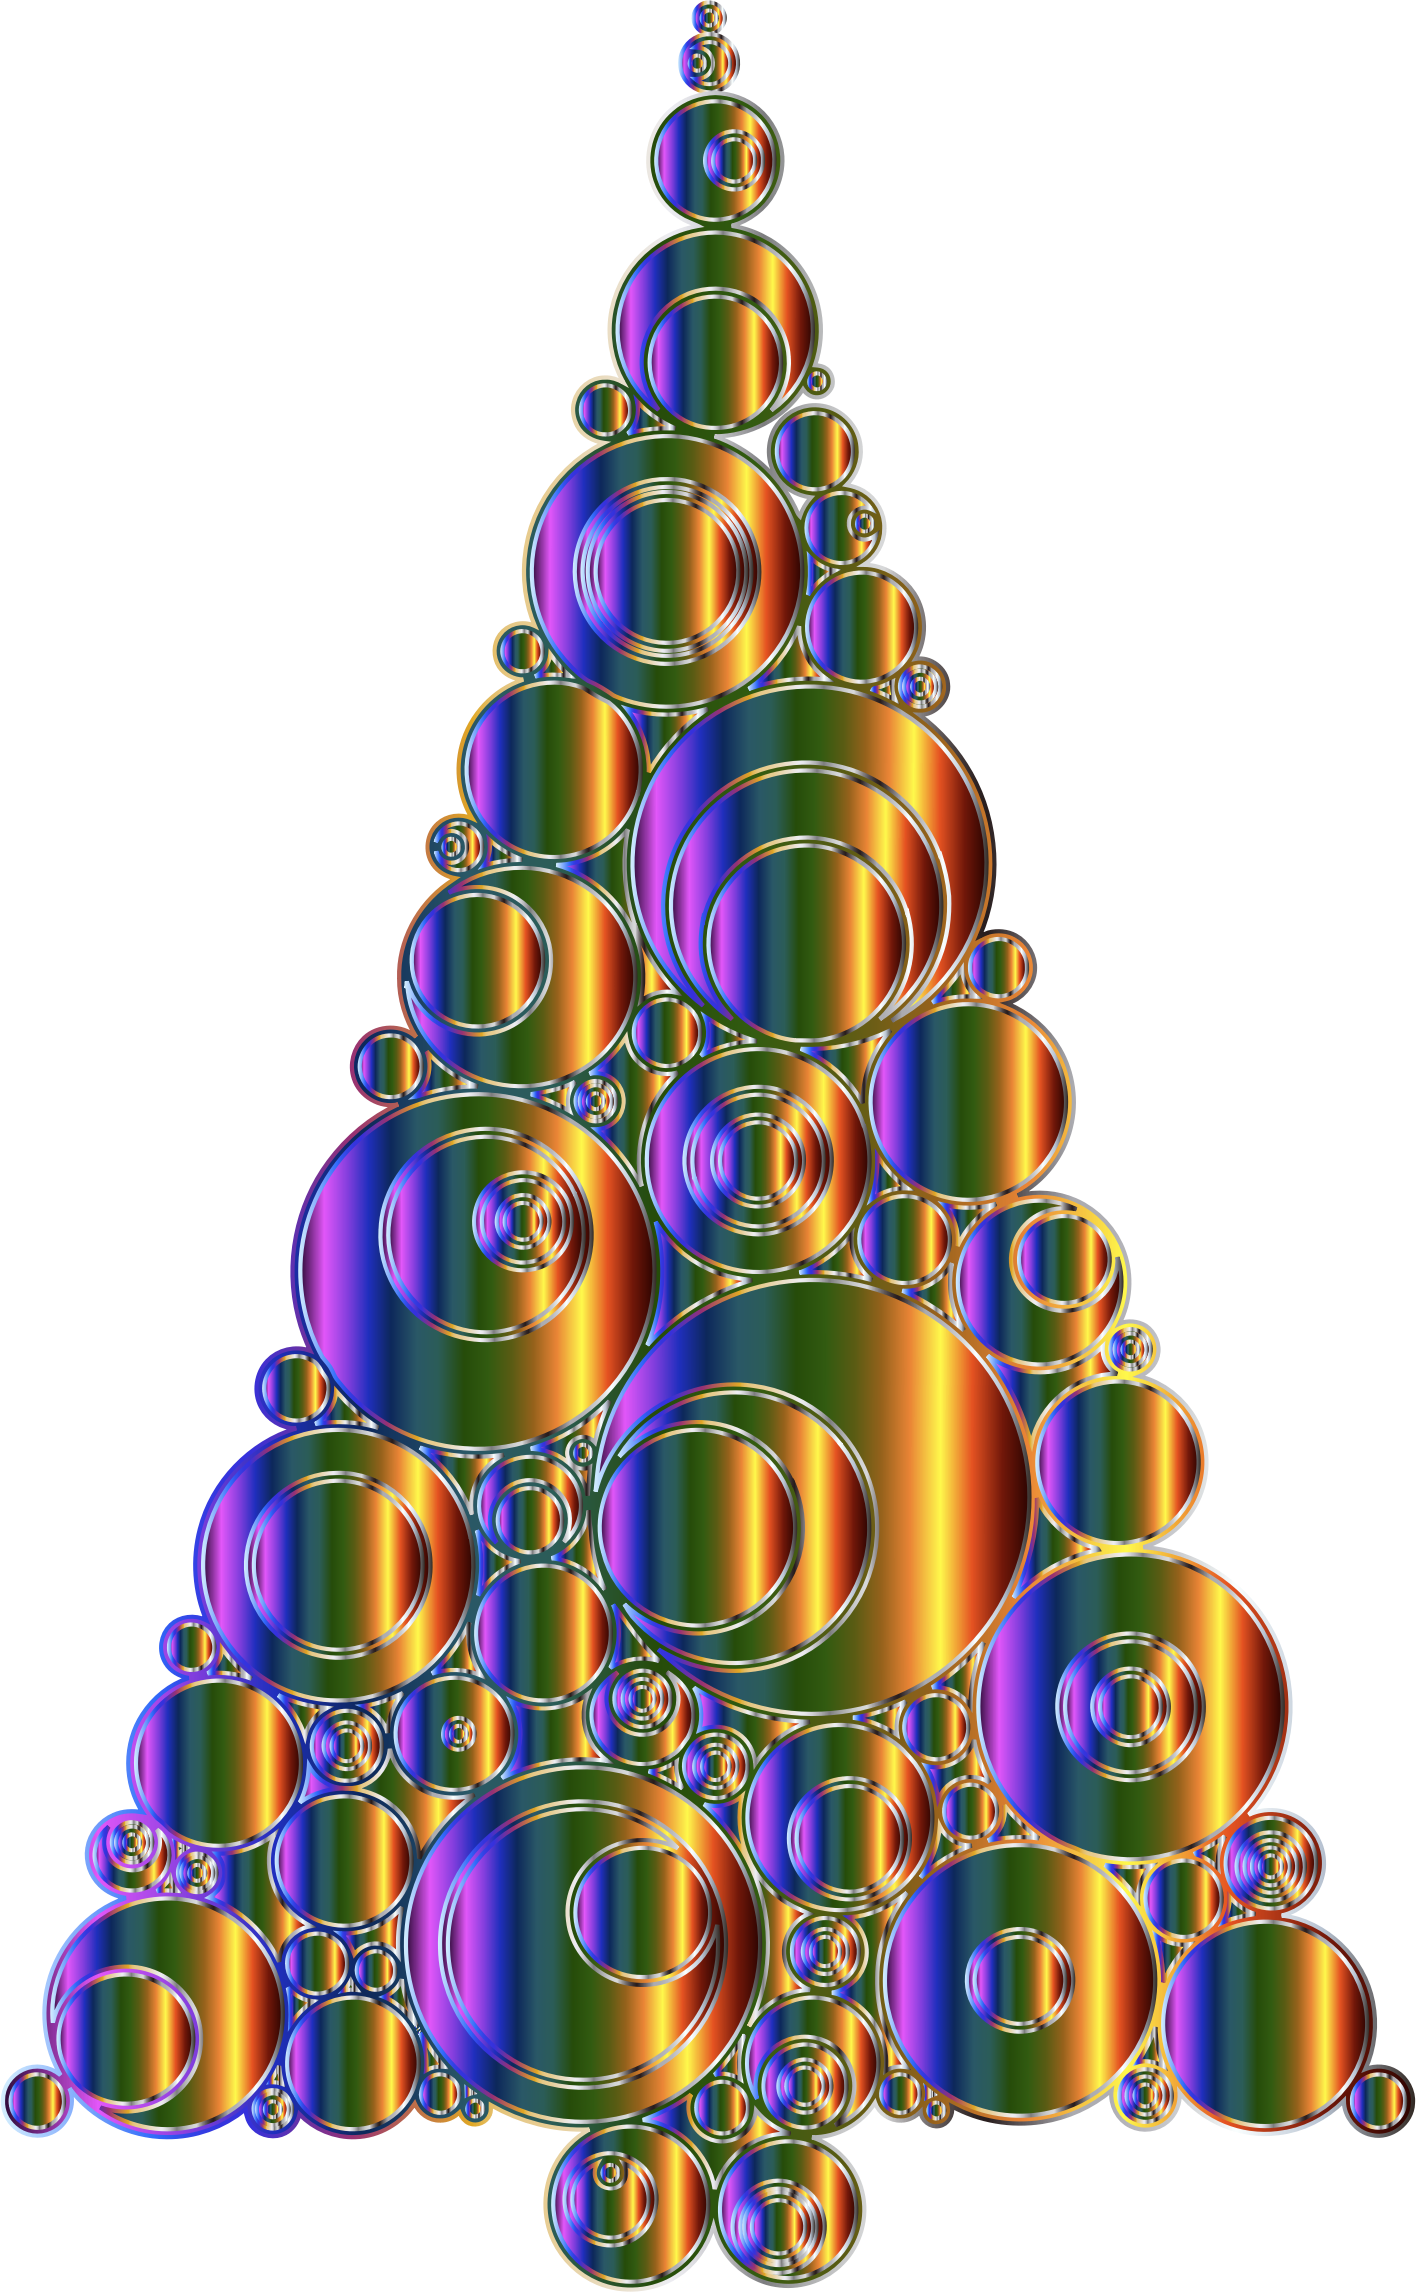 Colorful Abstract Circles Christmas Tree 6 Variation 4 No Background by GDJ